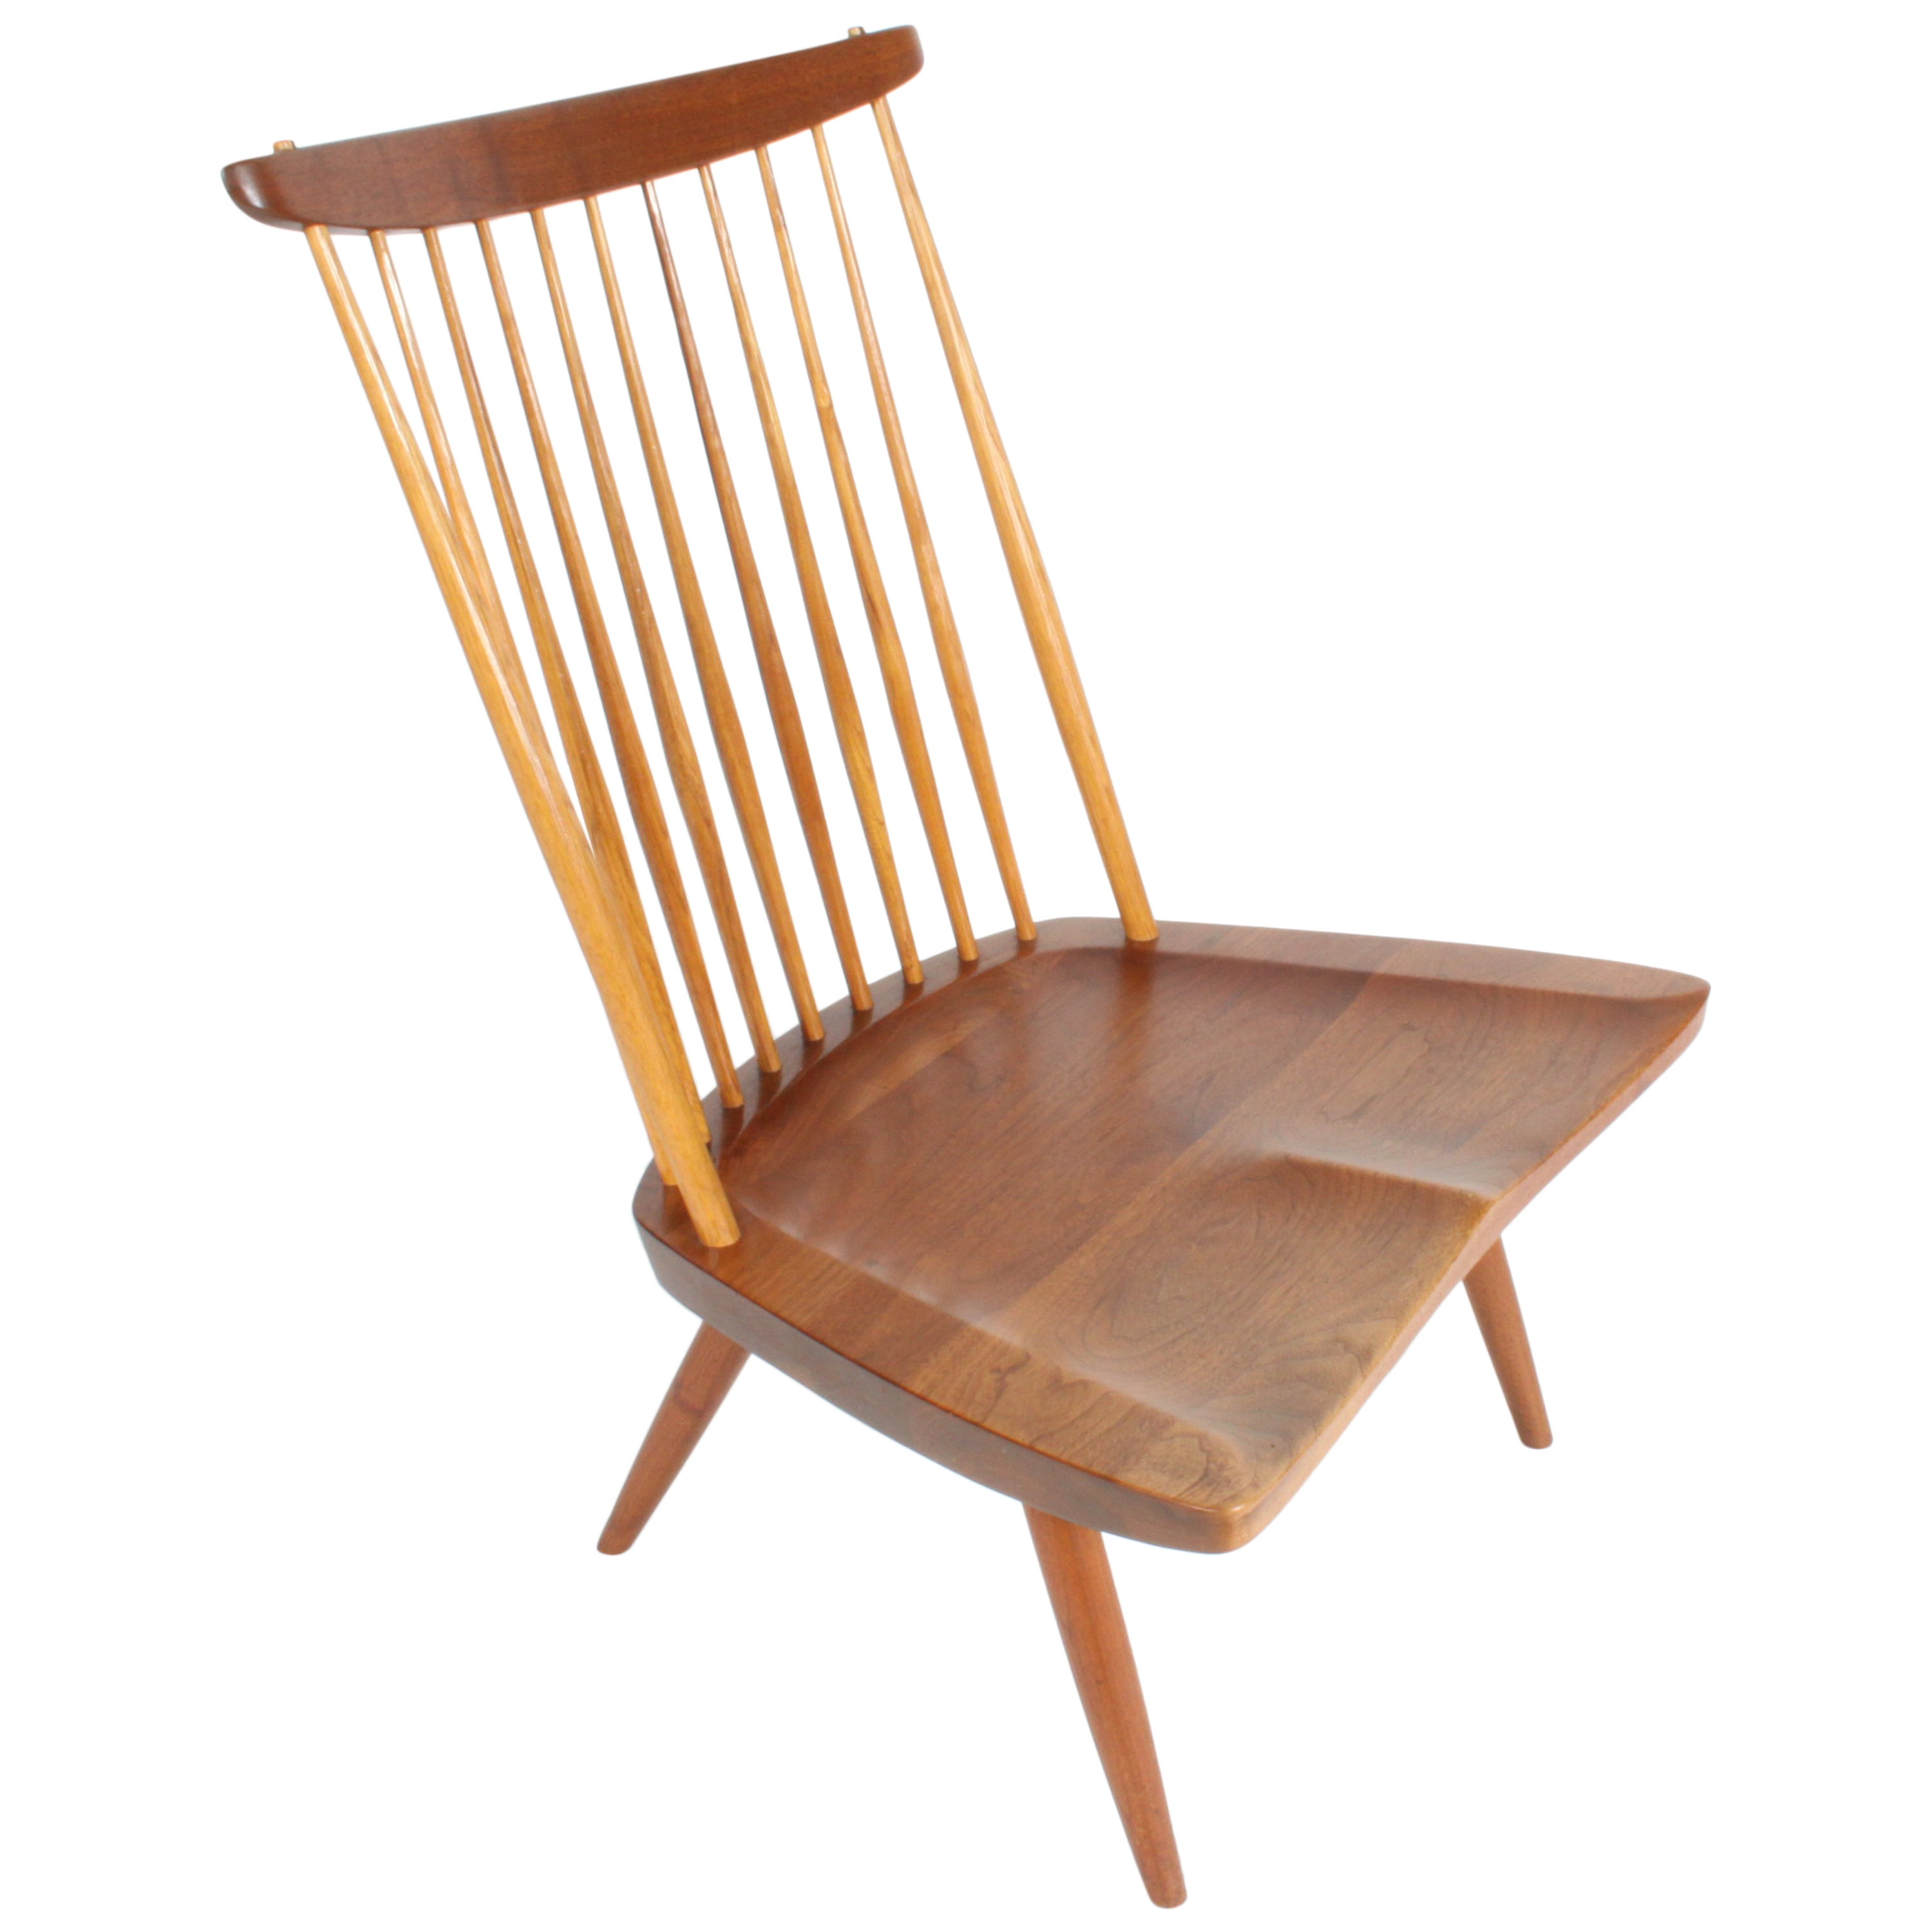 George Nakashima New Lounge Chair Studio Crafted for Architect Phillip Cotton For Sale at 1stdibs  sc 1 st  1stDibs & George Nakashima New Lounge Chair Studio Crafted for Architect ...